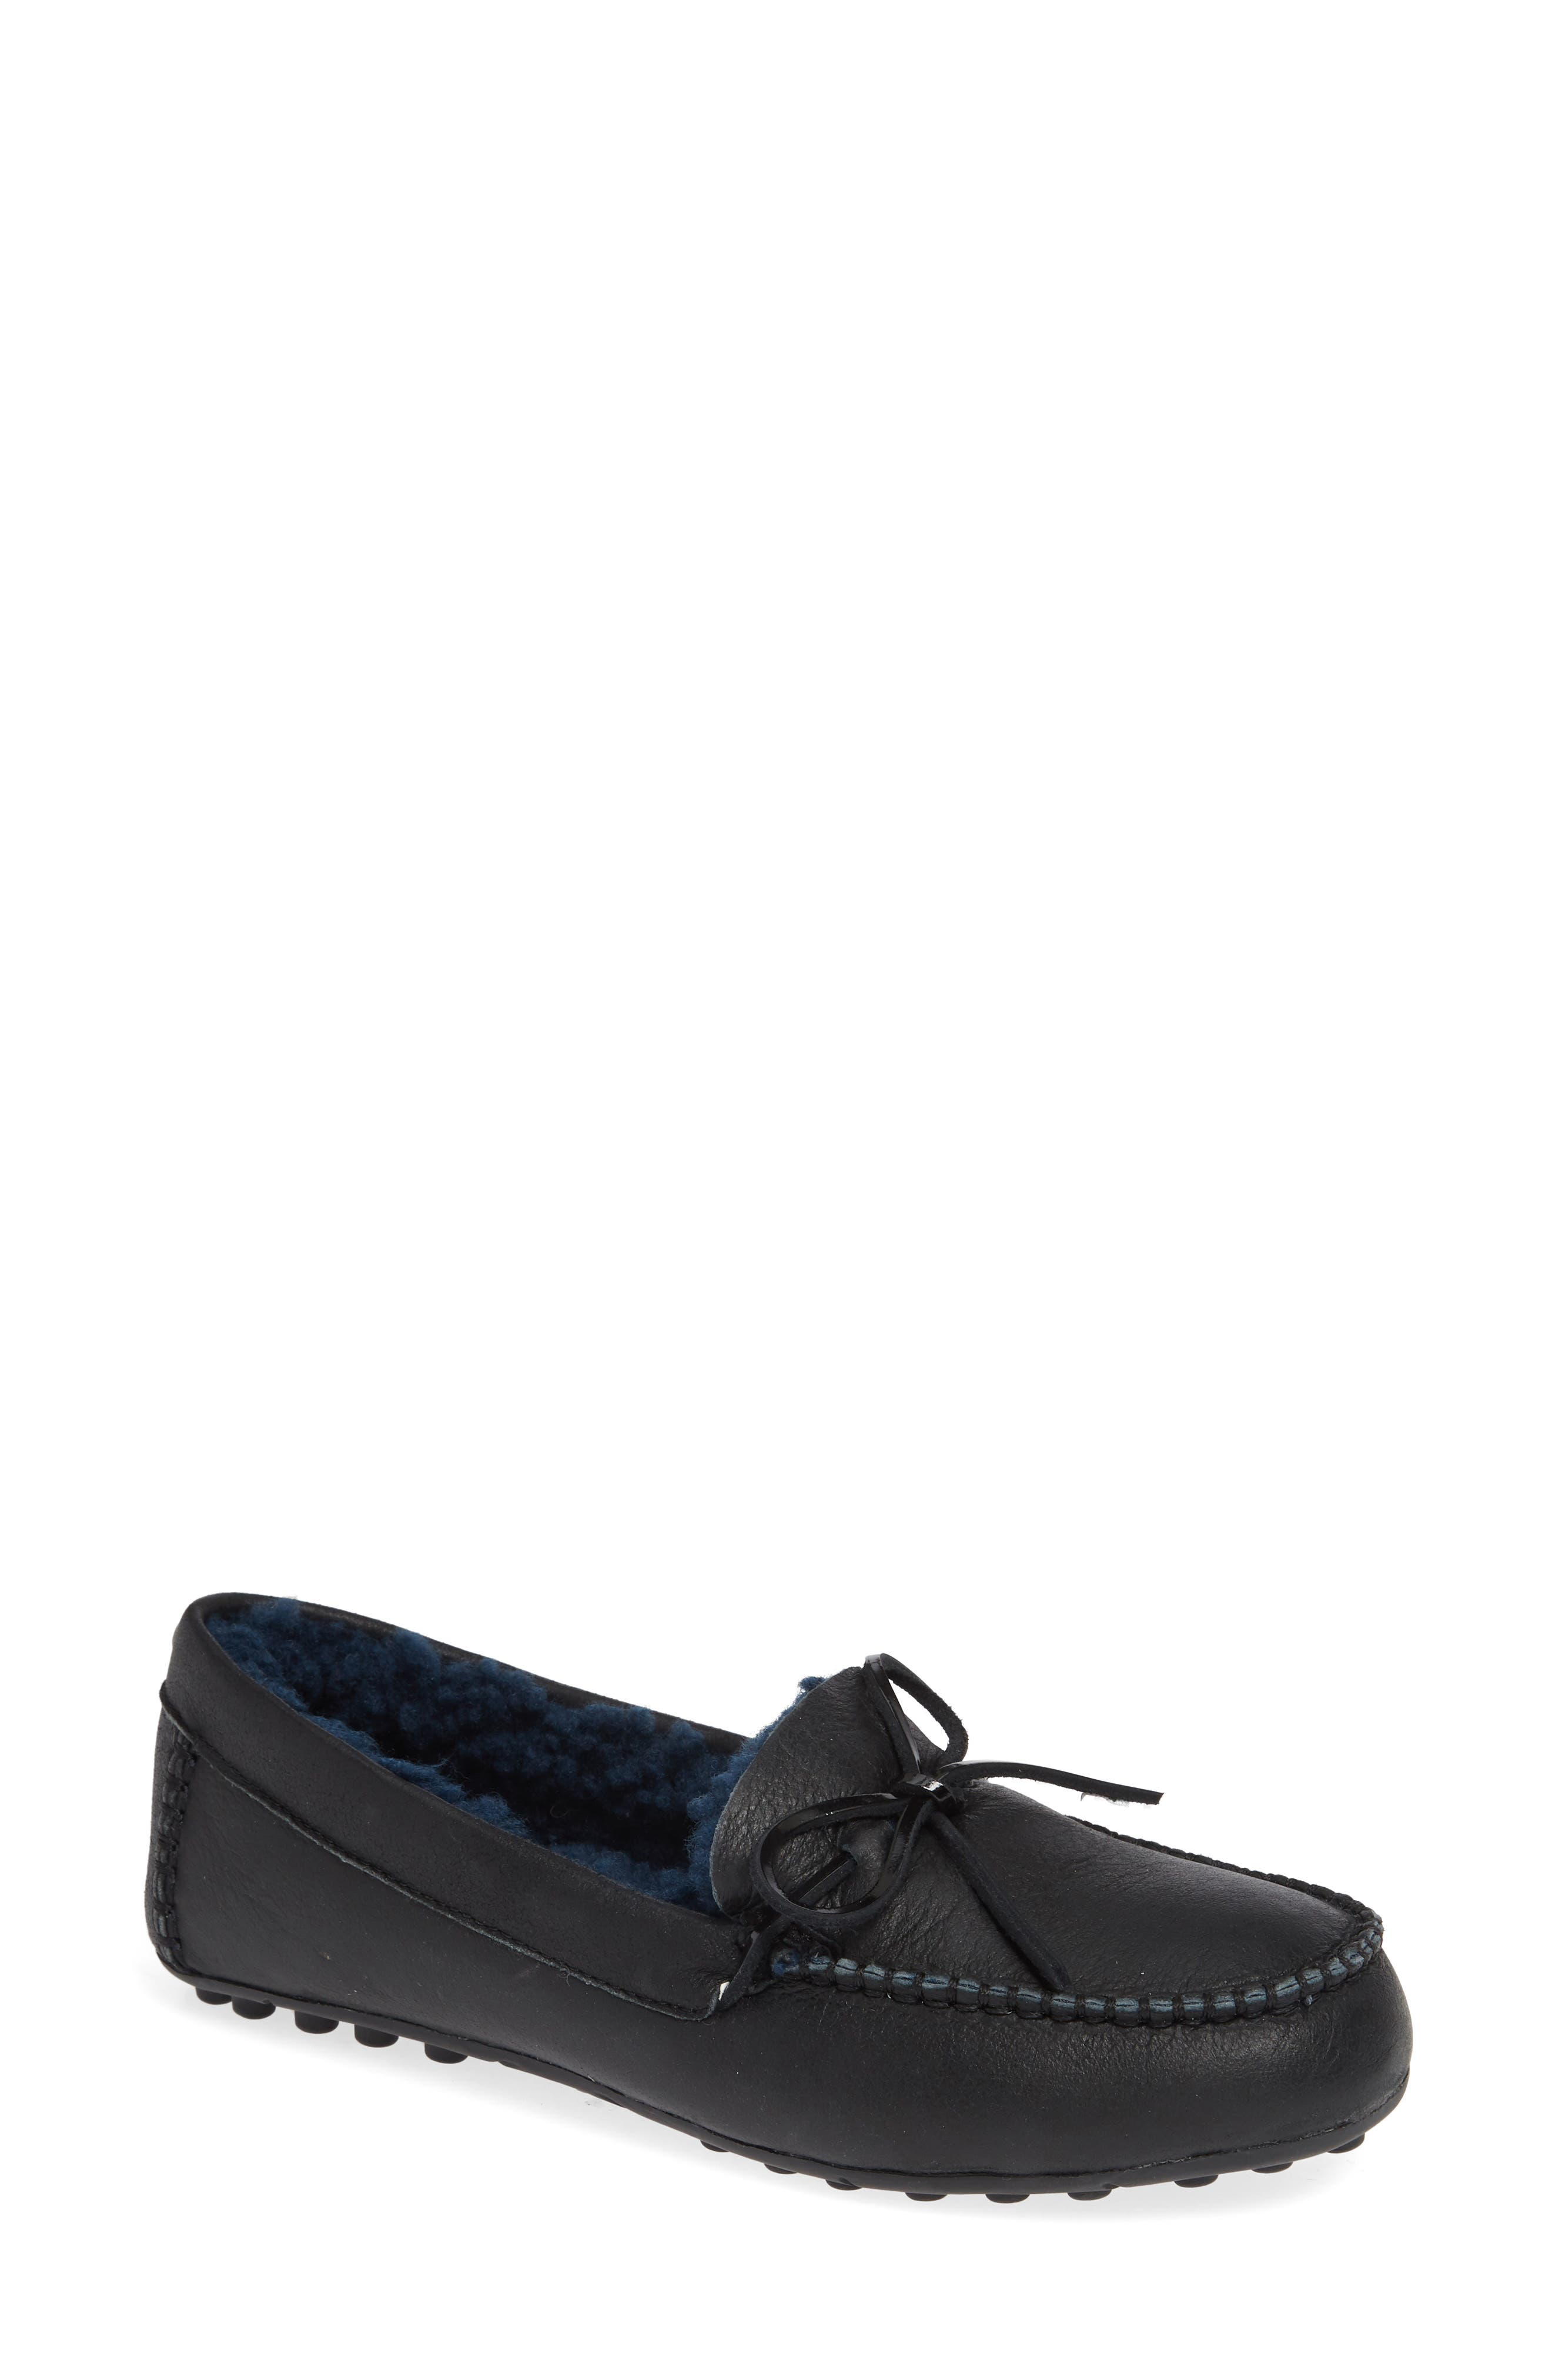 Deluxe Loafer,                             Main thumbnail 1, color,                             BLACK LEATHER